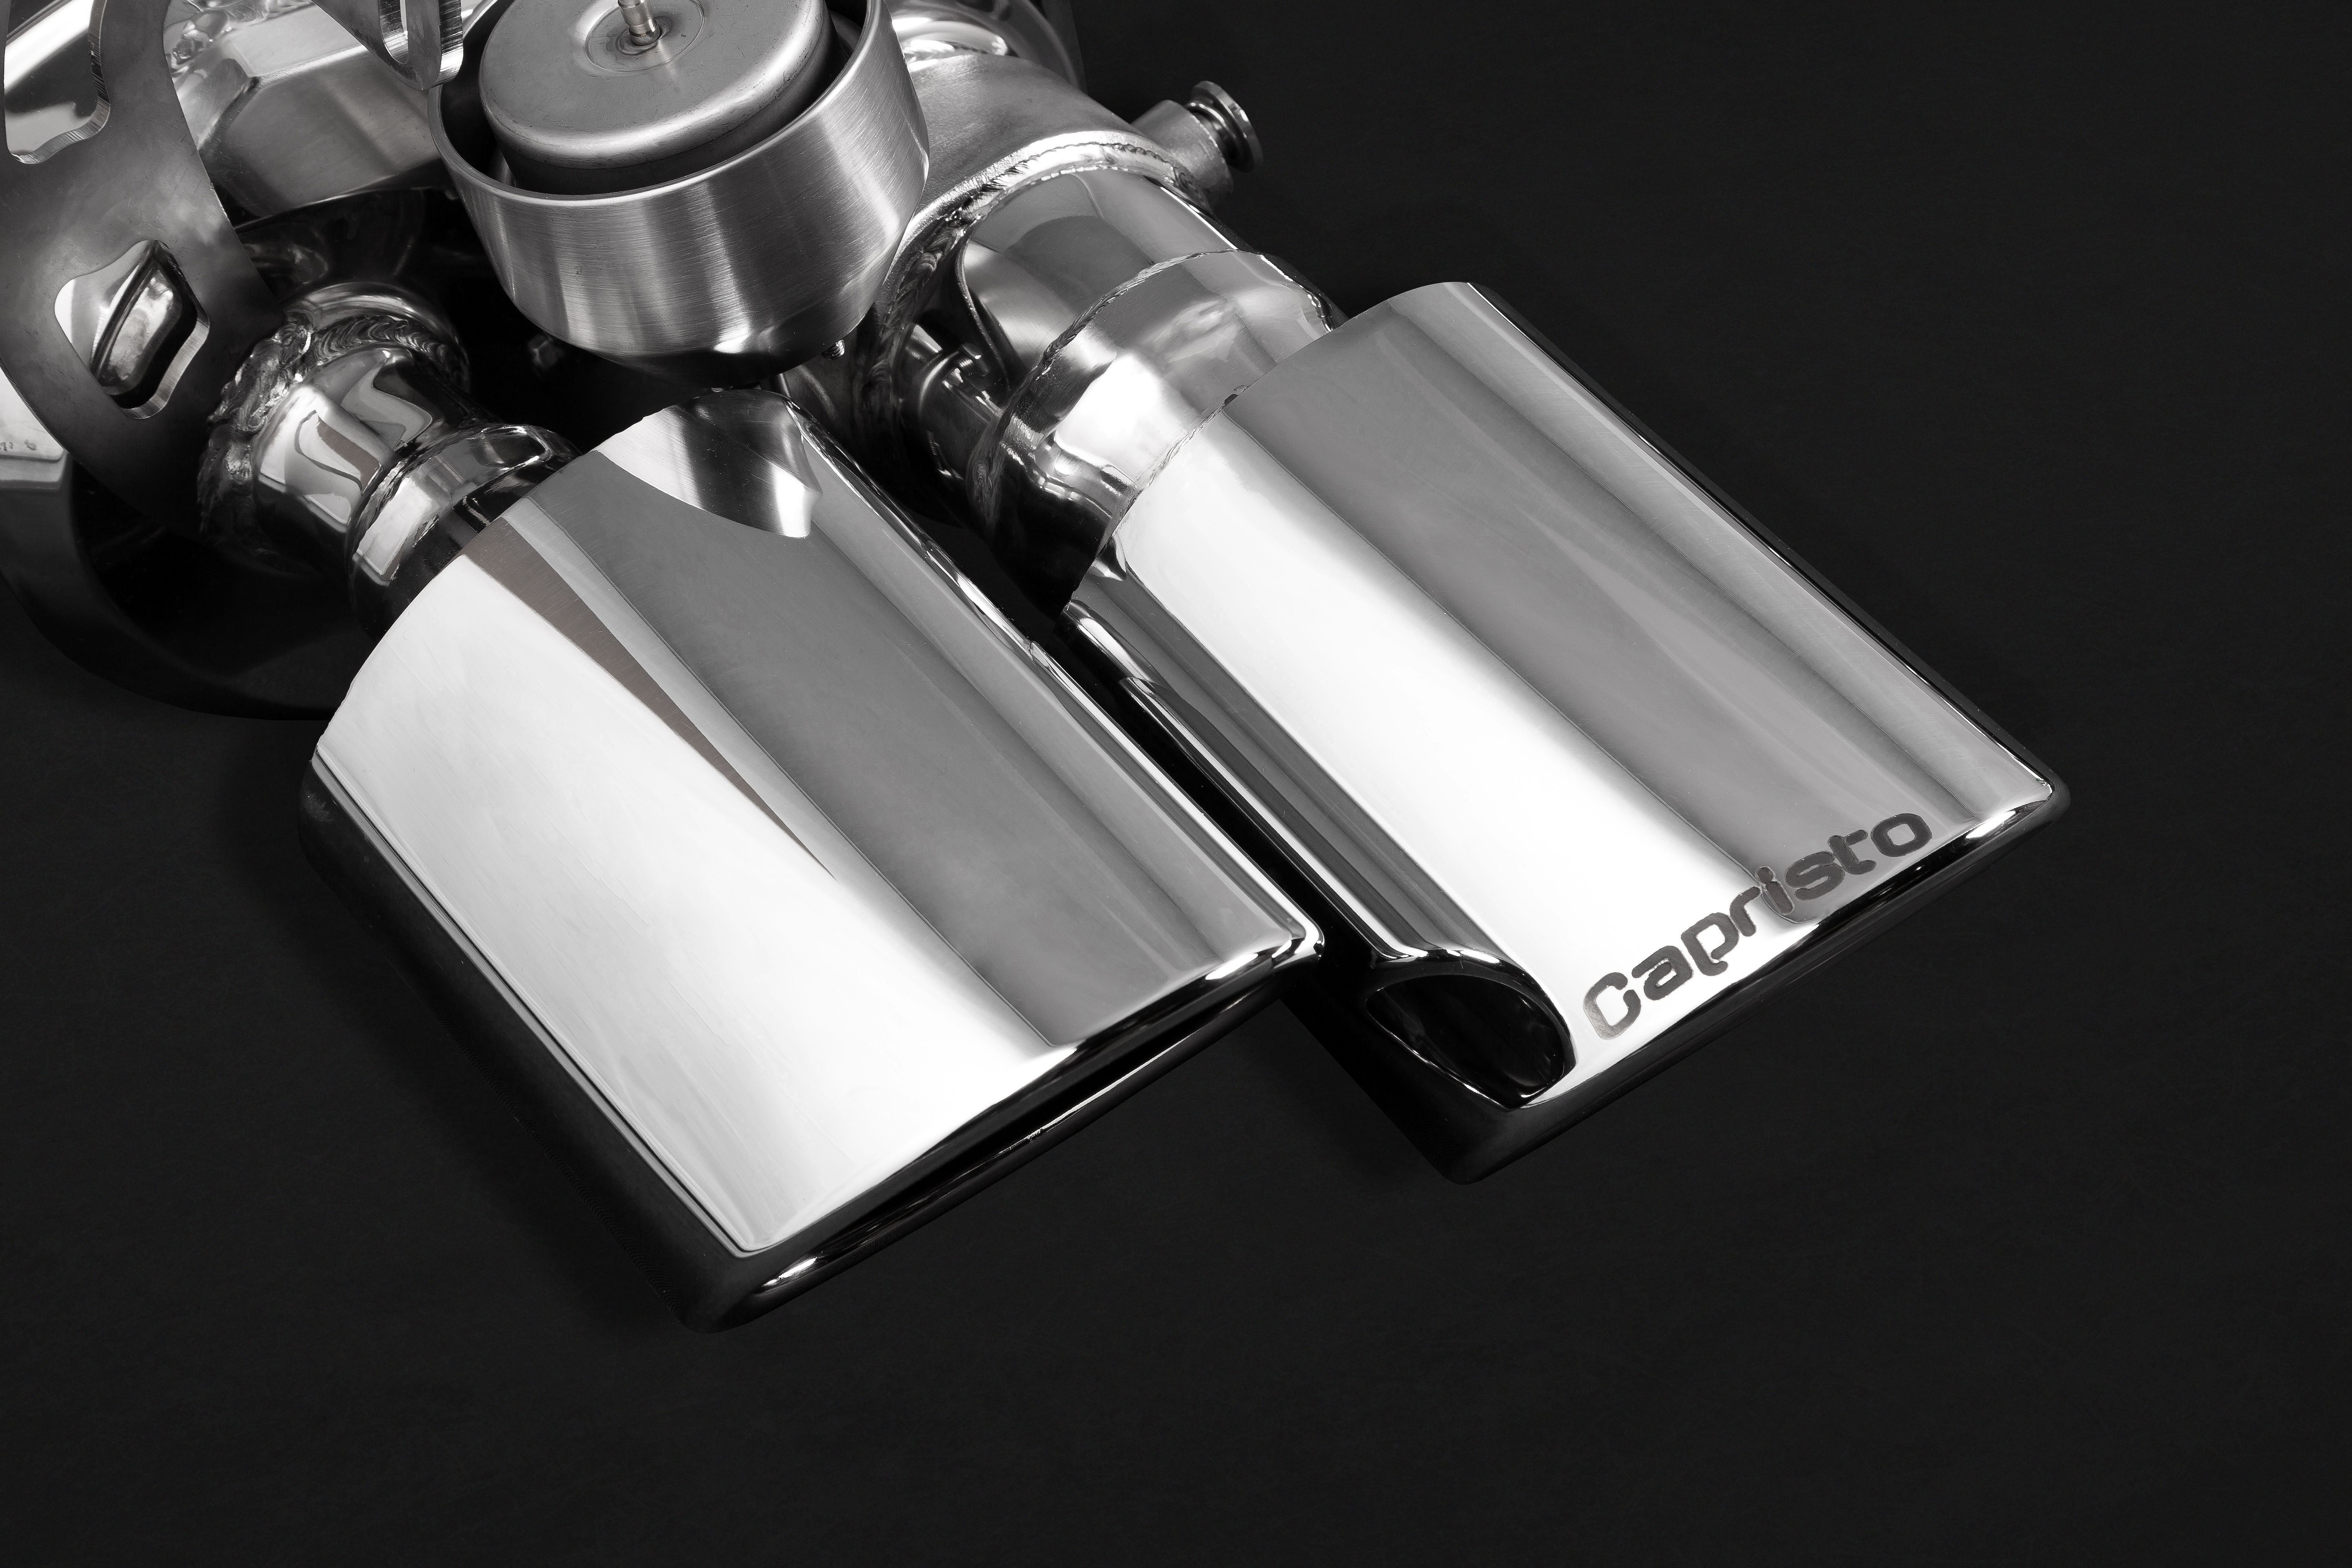 Porsche Panamera 971 Capristo Valved Exhaust Tips Close Up